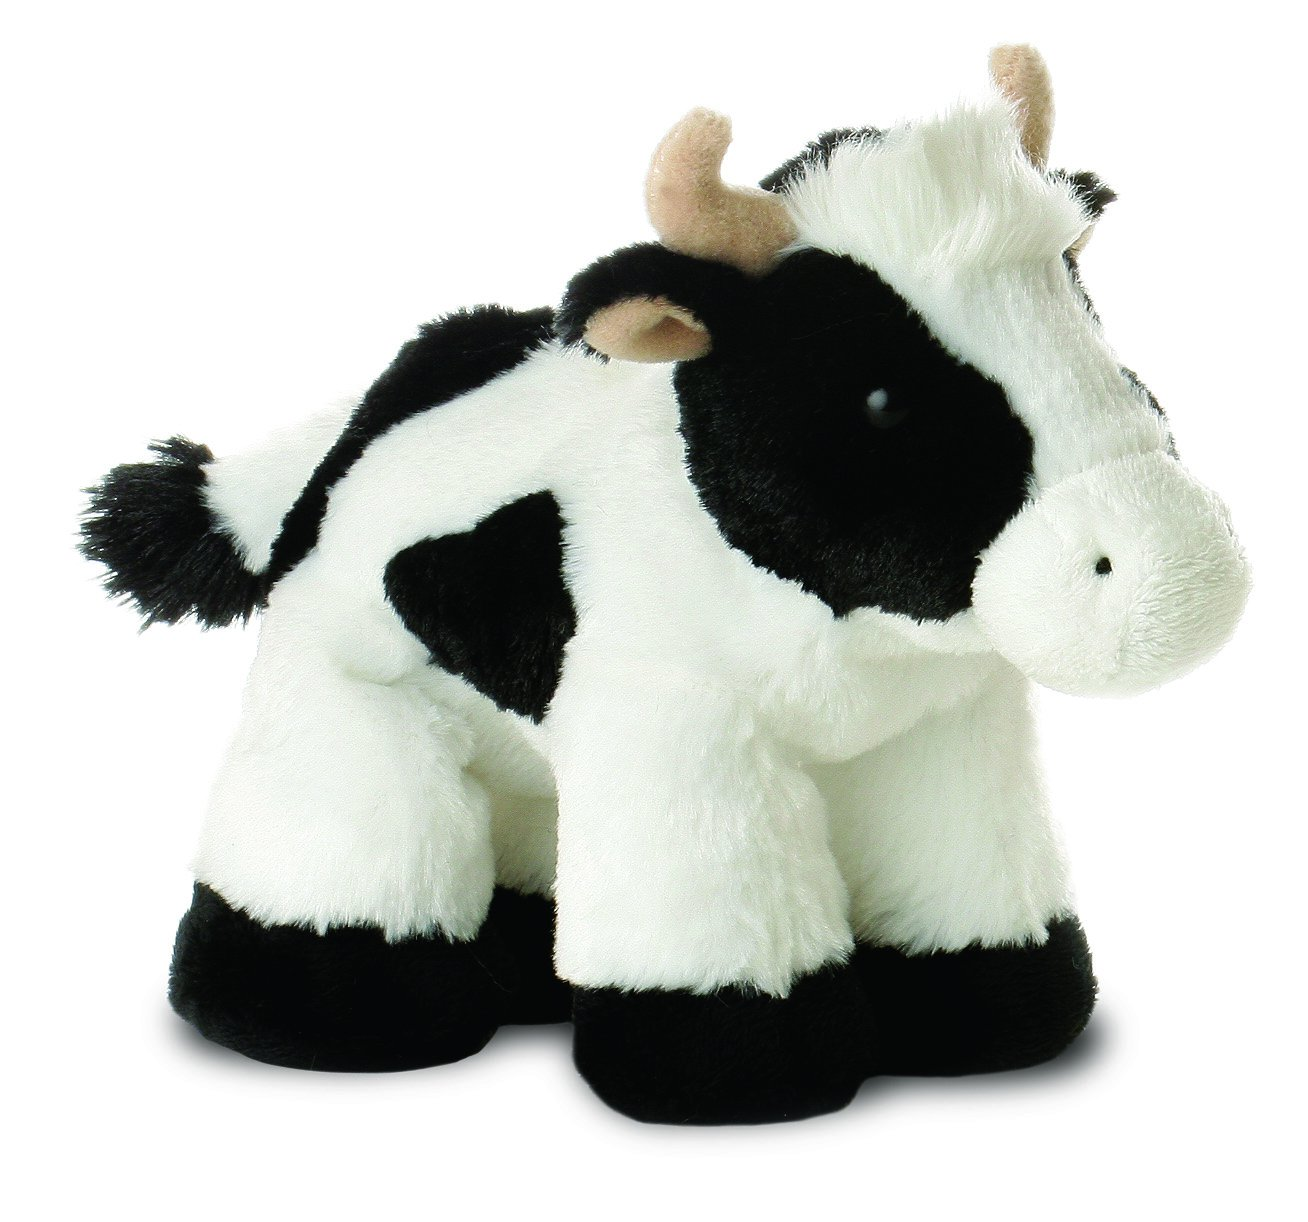 Best Selling Mini Flopsie - Mini Moo Cow Plush Soft Toy Animal - Cuddly & Cute Birthday Gift / Present for Ladies & Women Belair Gifts